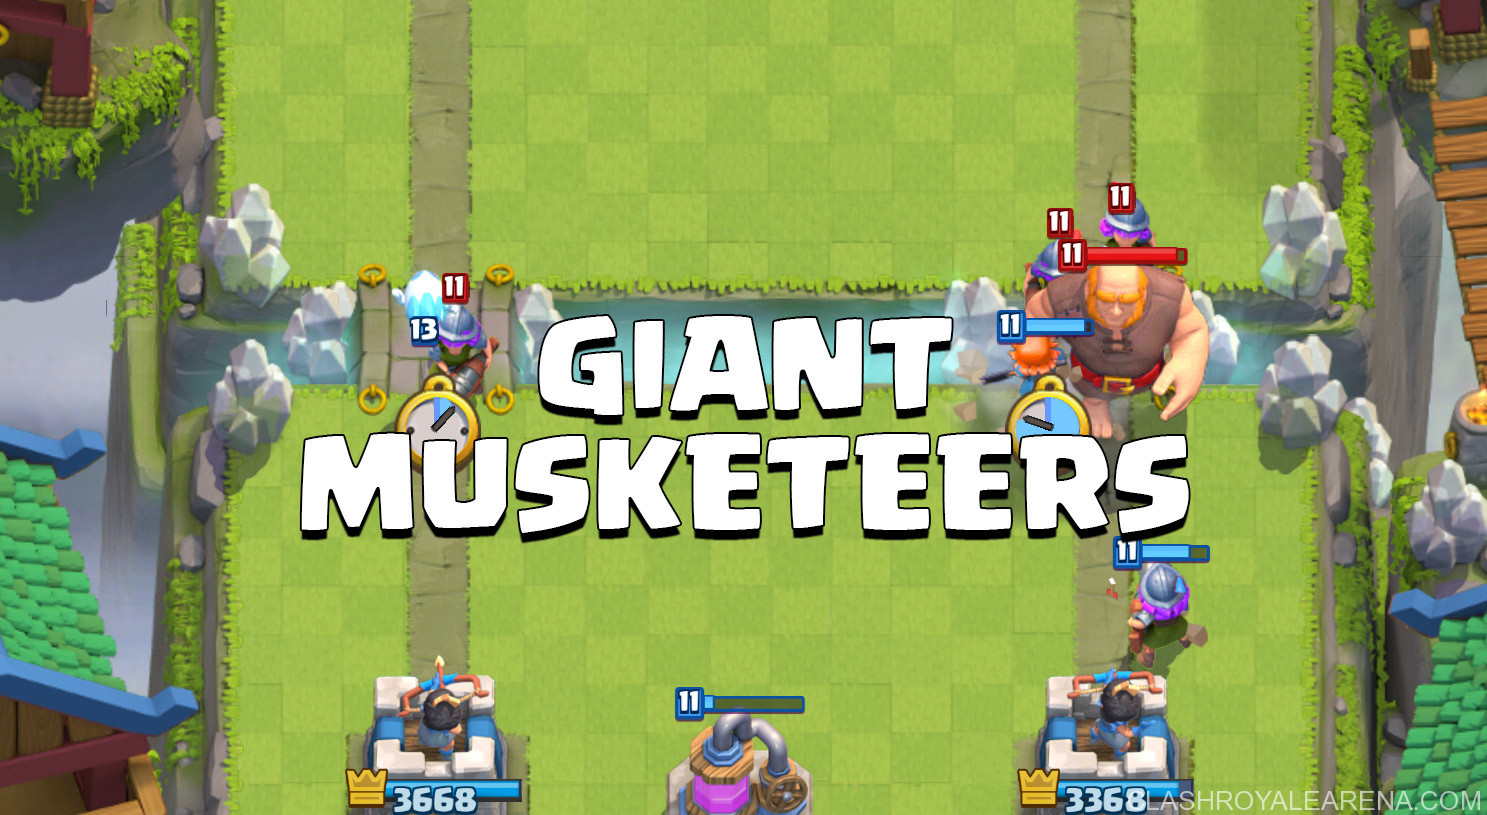 Giant Musketeers Deck